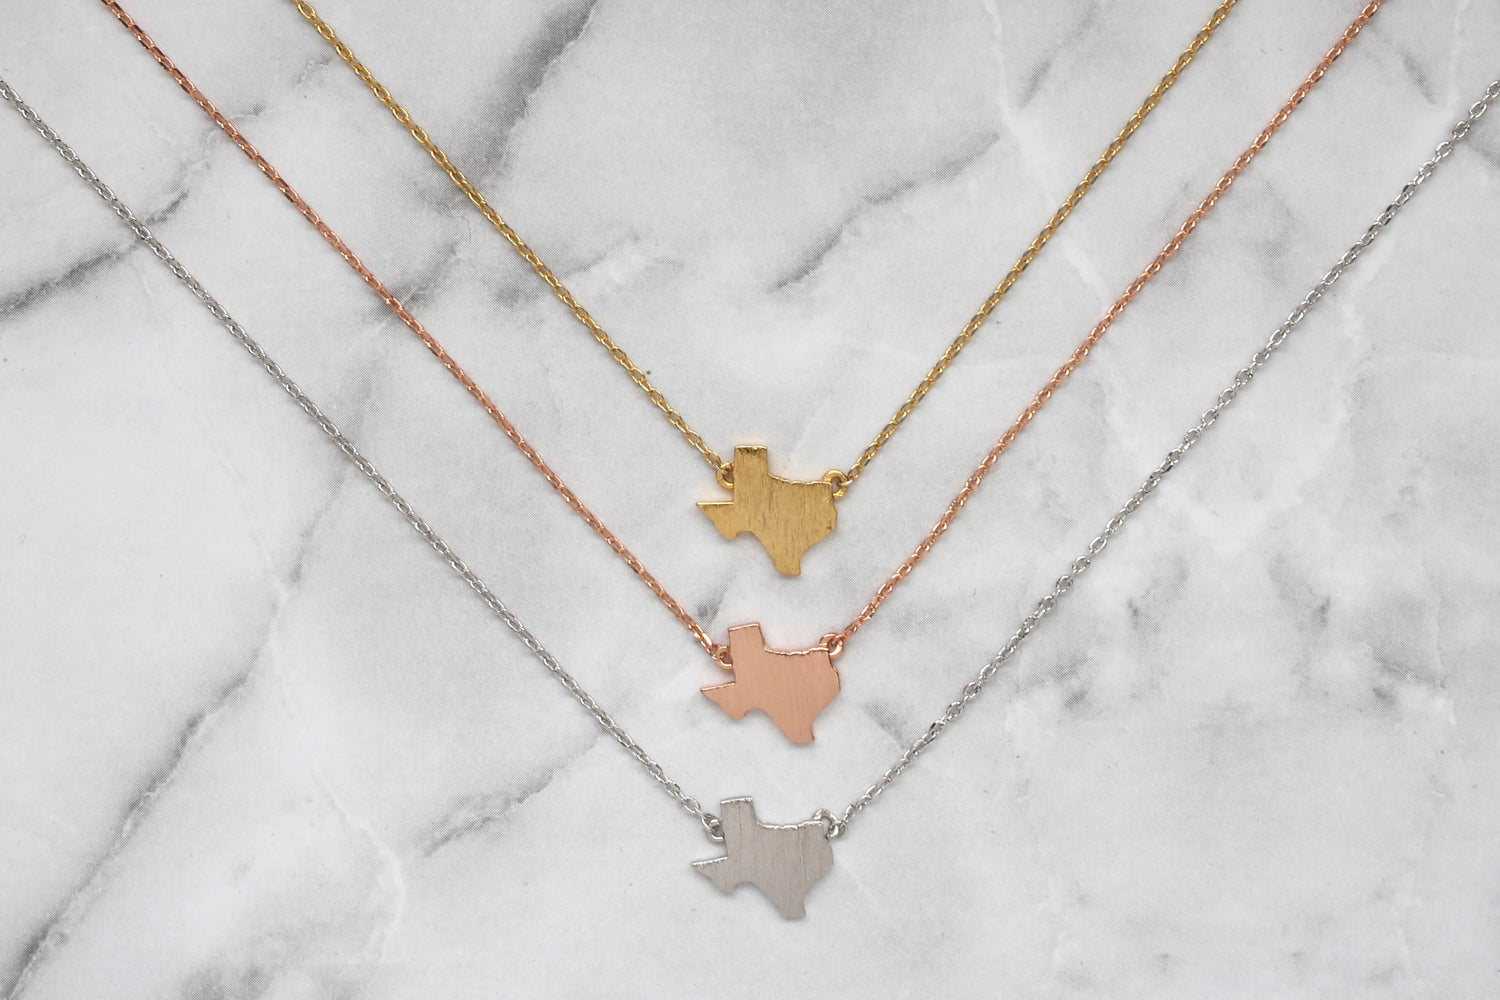 Dainty Texas Love Necklace- 3 COLOR OPTIONS